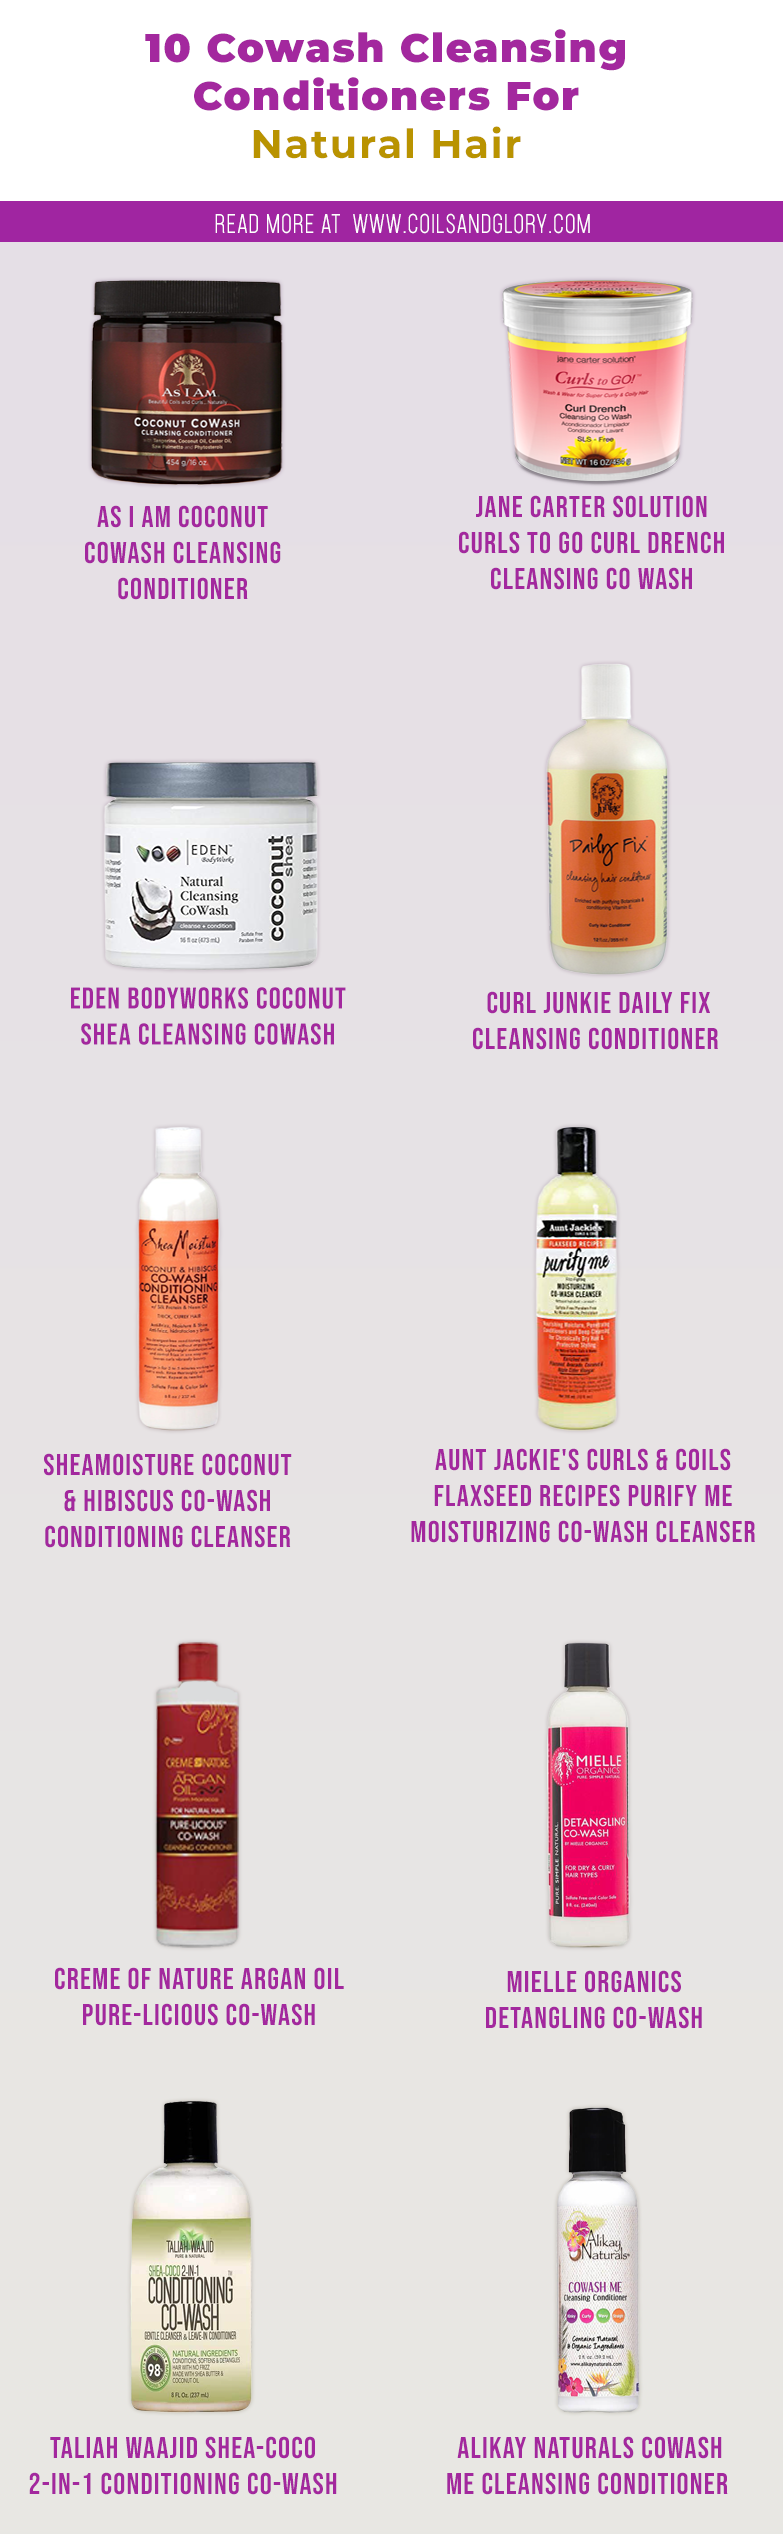 co-wash cleansing conditioners for natural hair